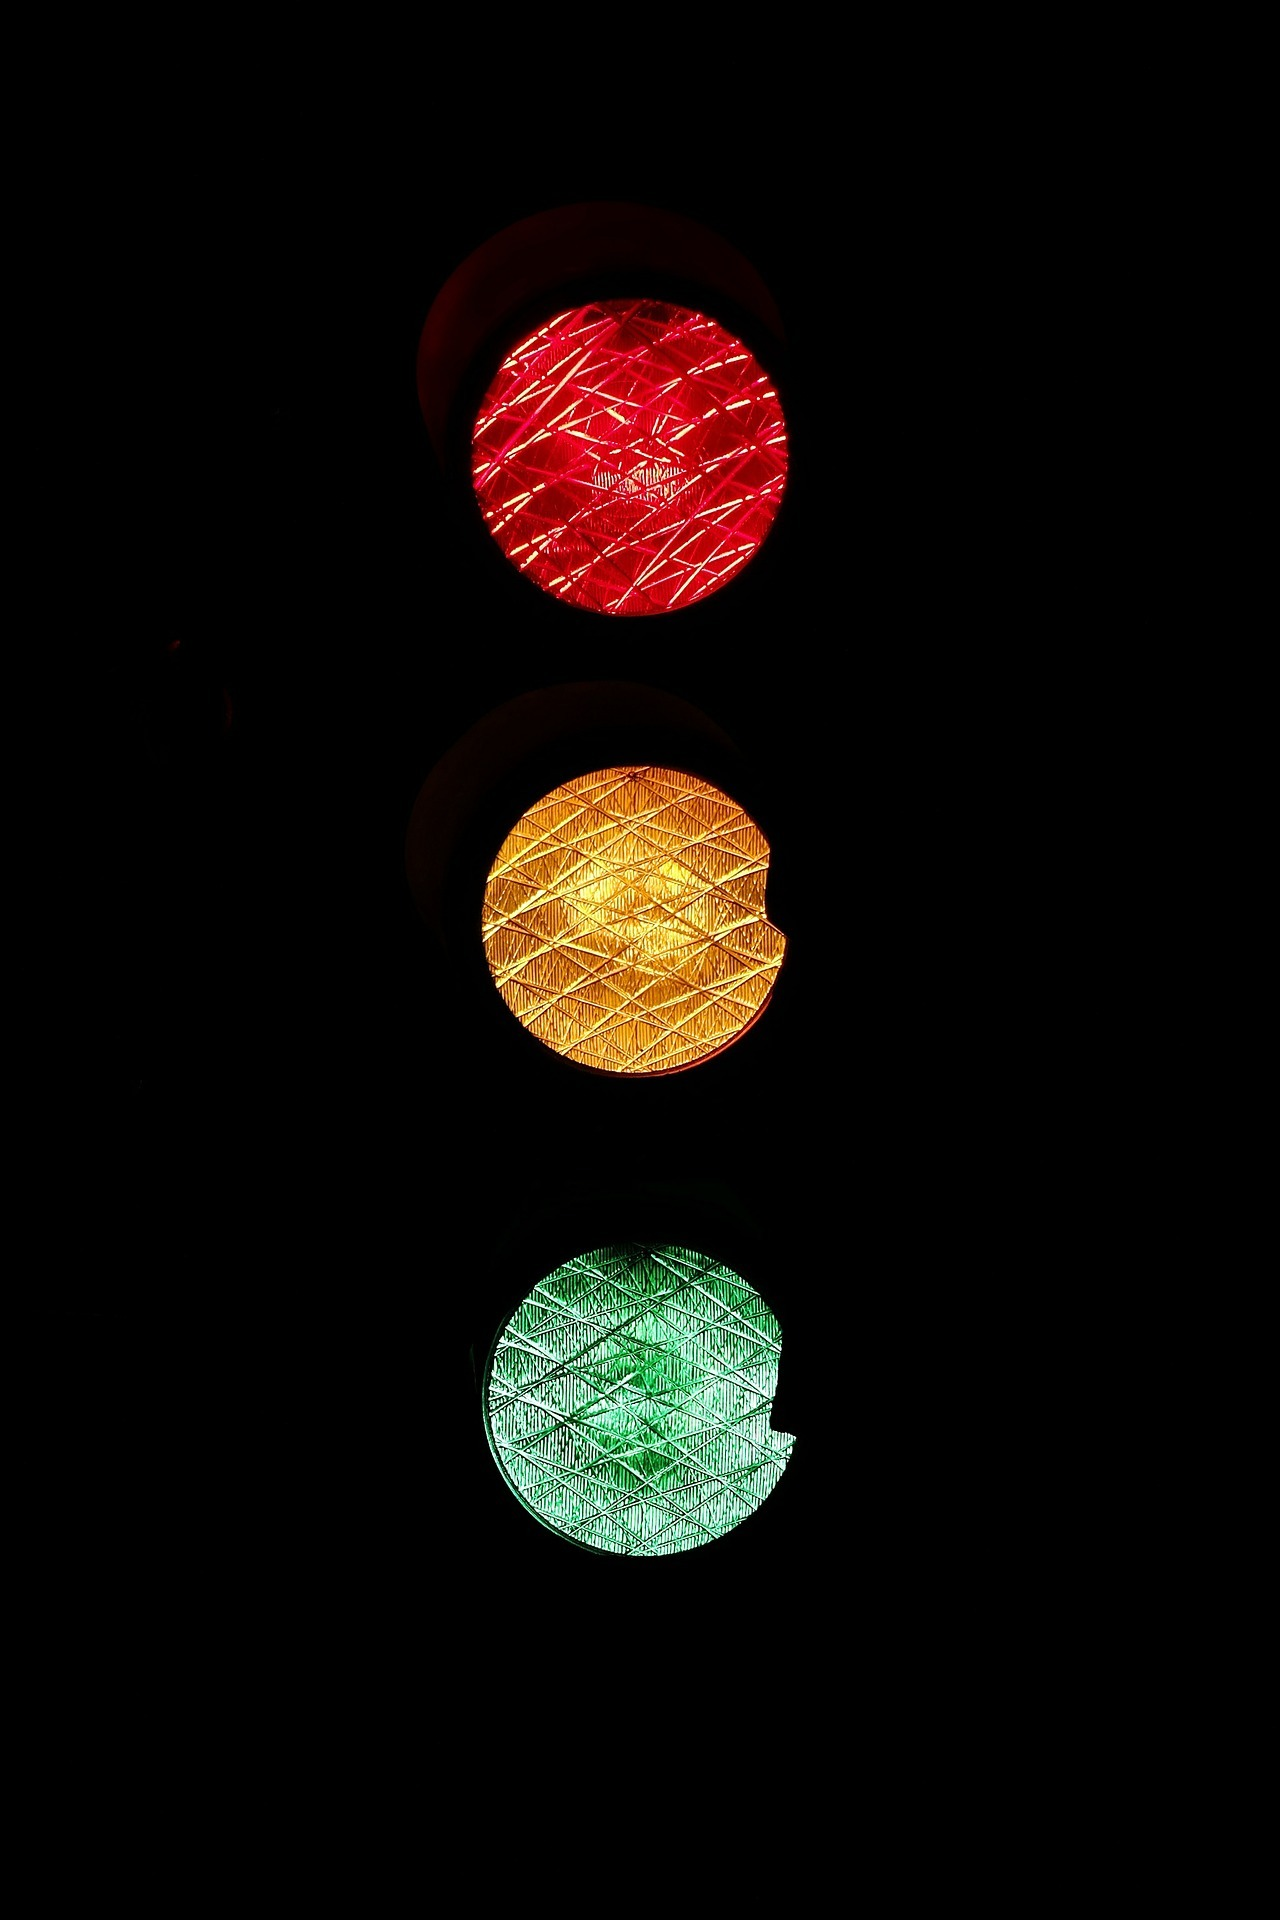 traffic-lights-514932_1920